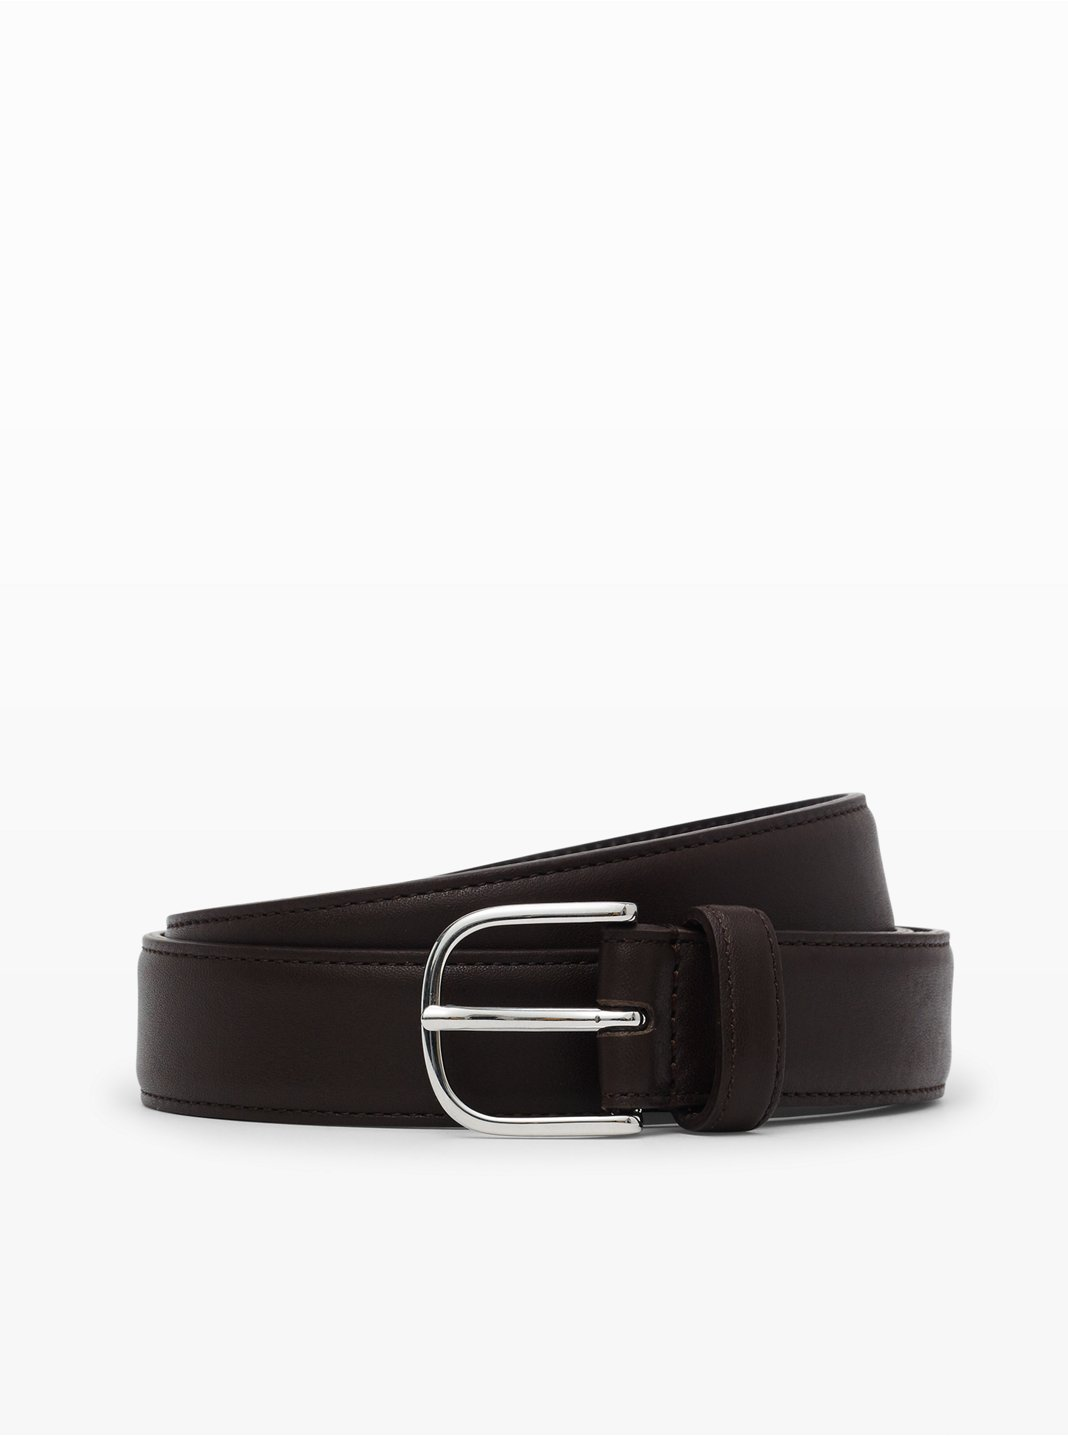 클럽 모나코 벨트 Club Monaco Leather Dress Belt